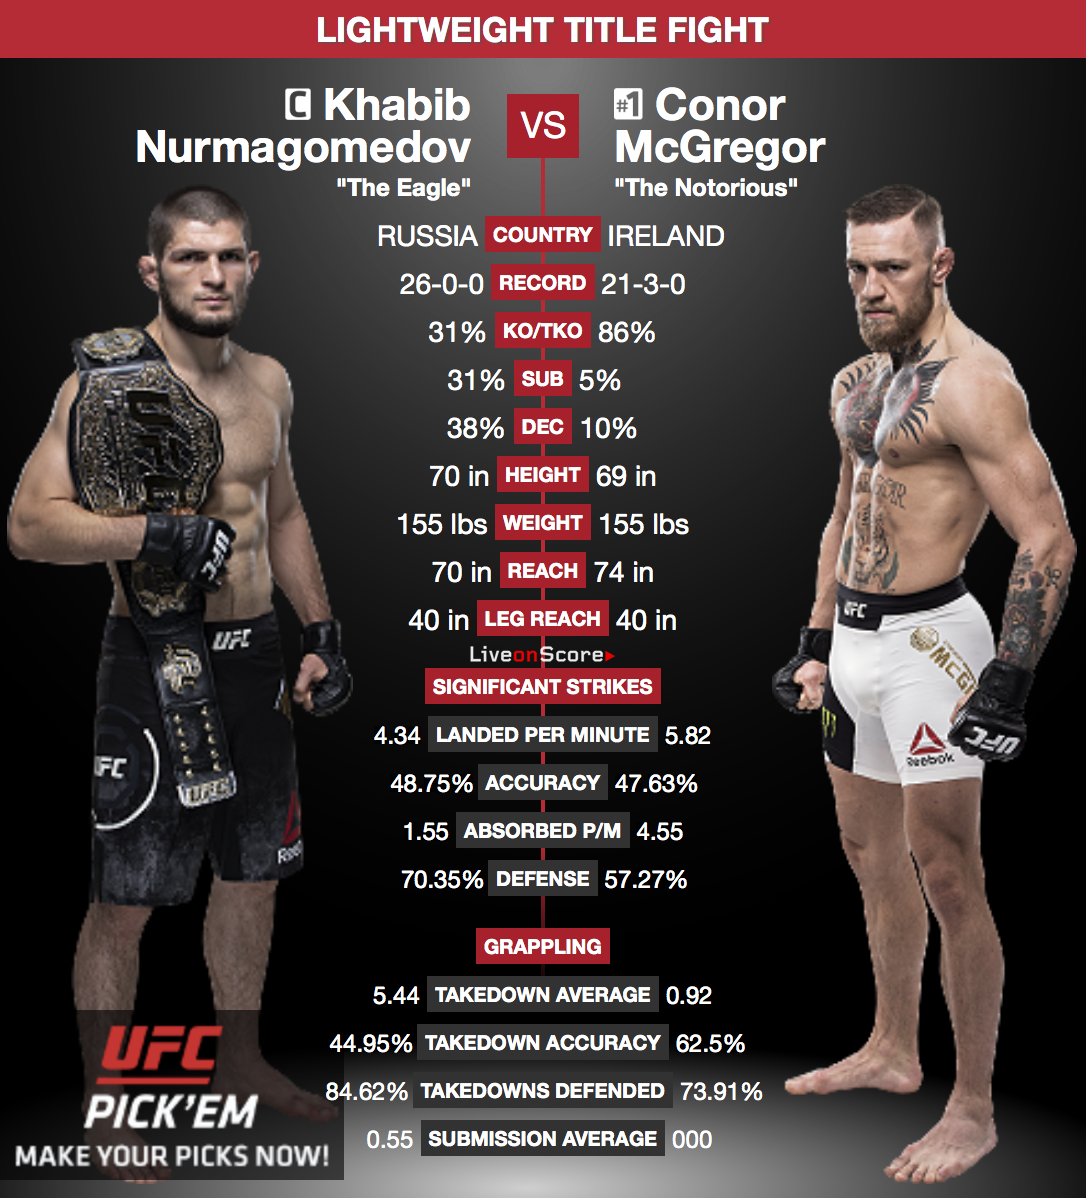 What time does McGregor vs. Khabib actually start?